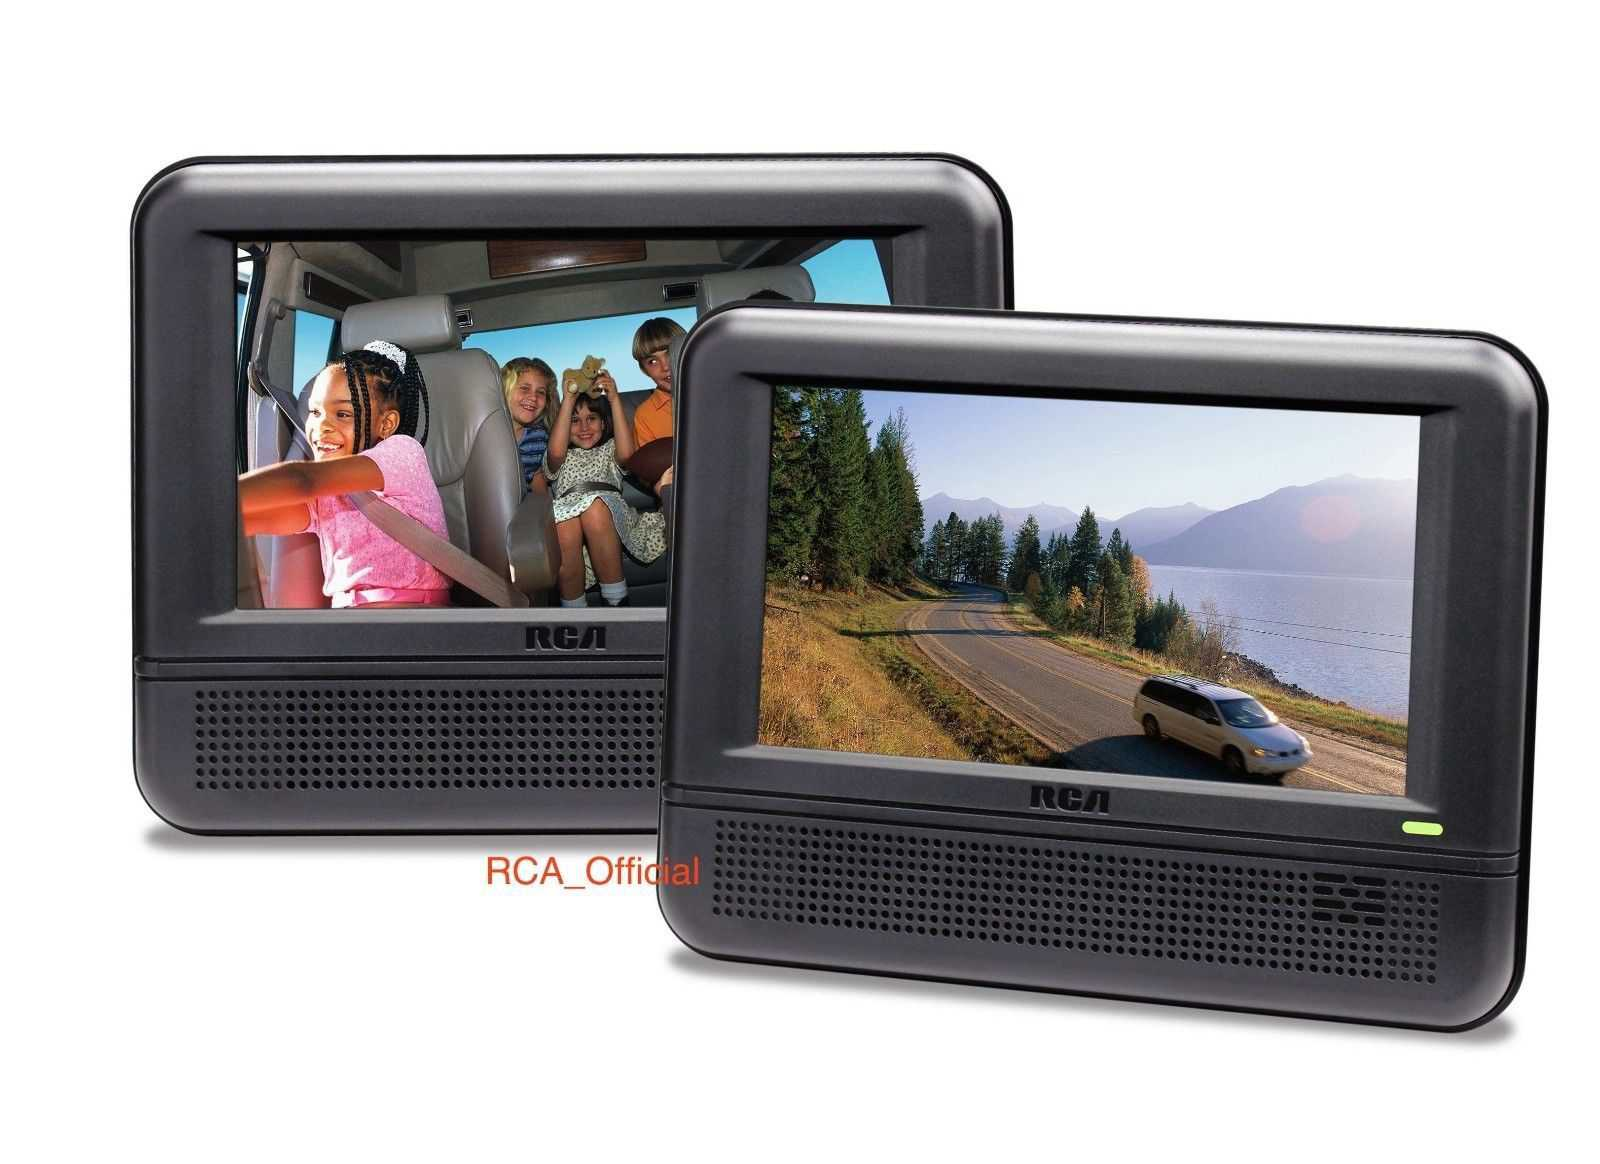 RCA DRC6272E22 Twin Mobile DVD System with 7-Inch Screens (Black) Refurbished